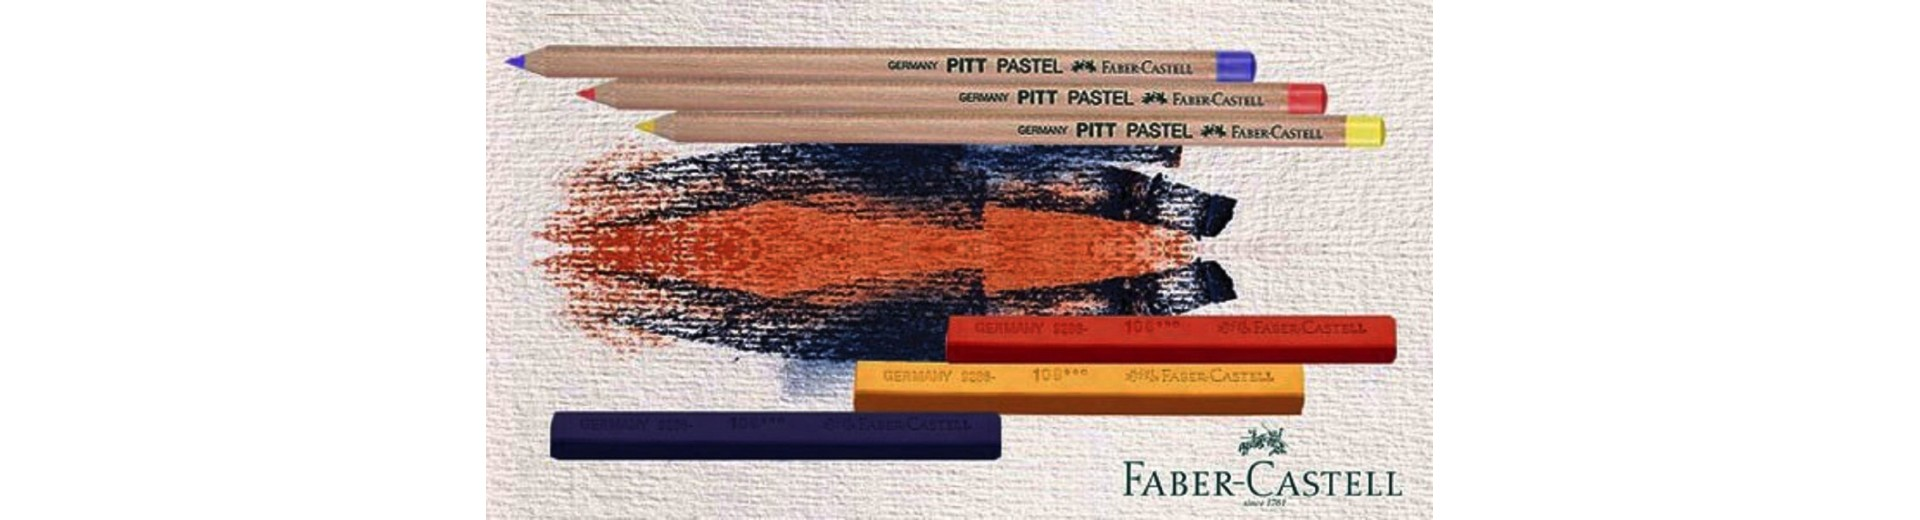 PASTELES FABER CASTELL